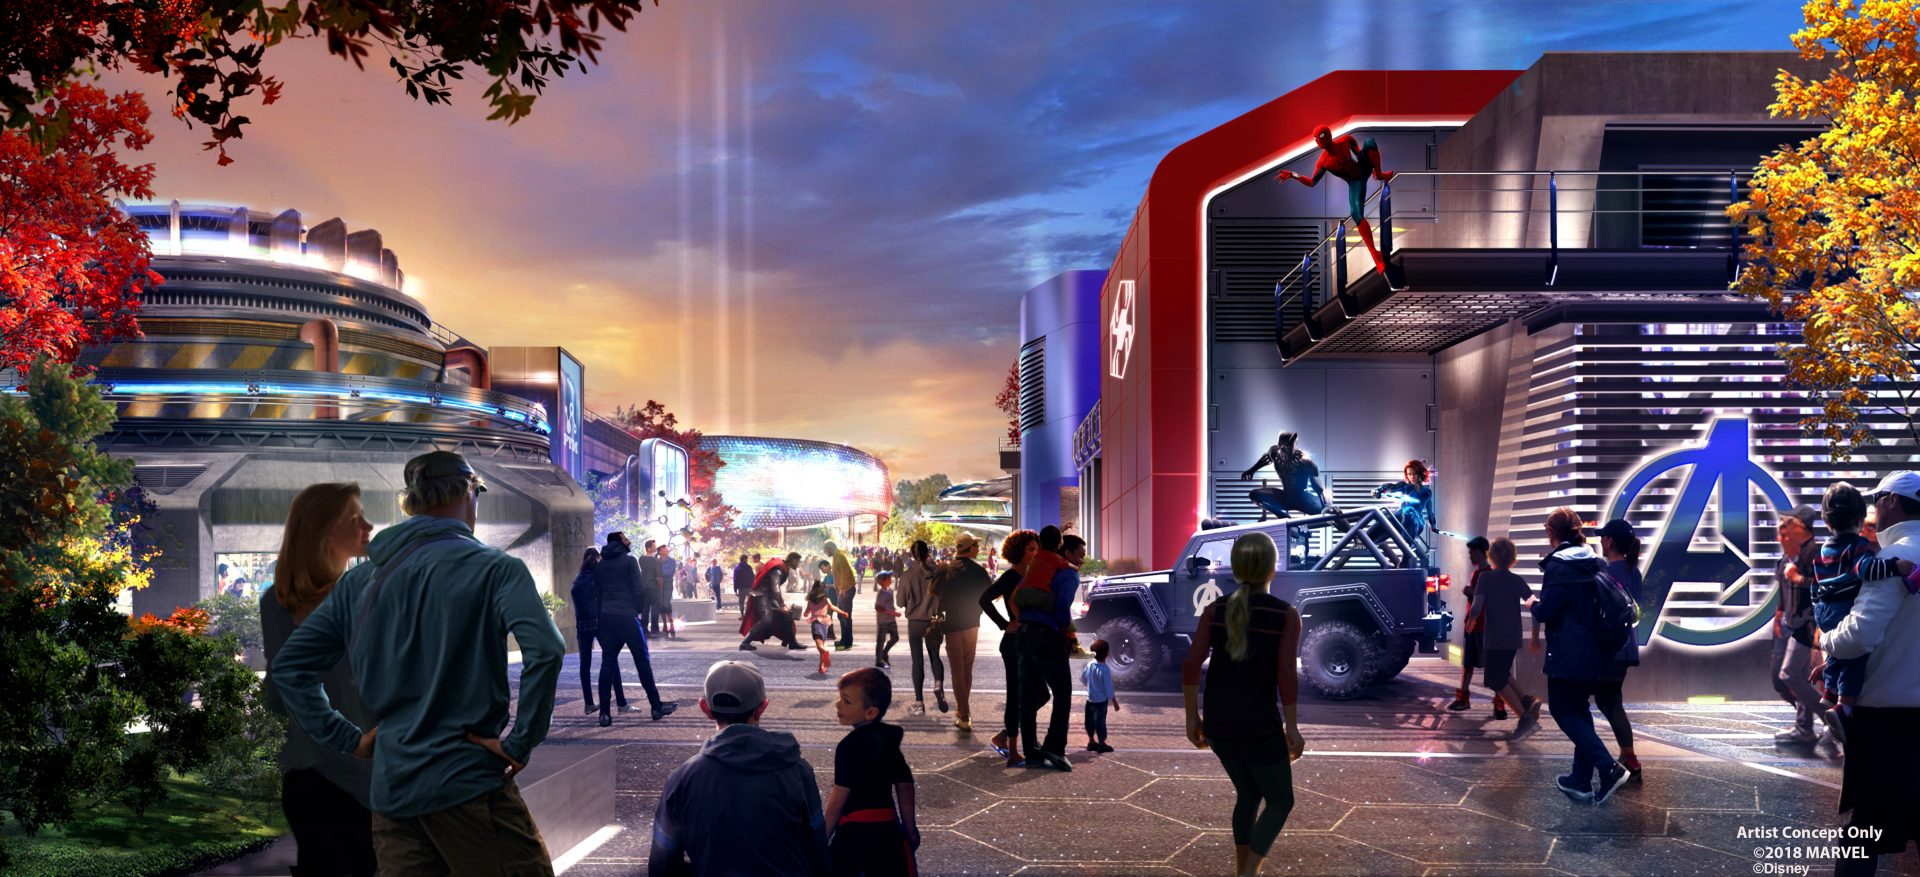 [Parc Walt Disney Studios] Attraction Iron Man et les Avengers (202?) - Page 21 Marvel-Land-Disneyland-Paris-1920x877